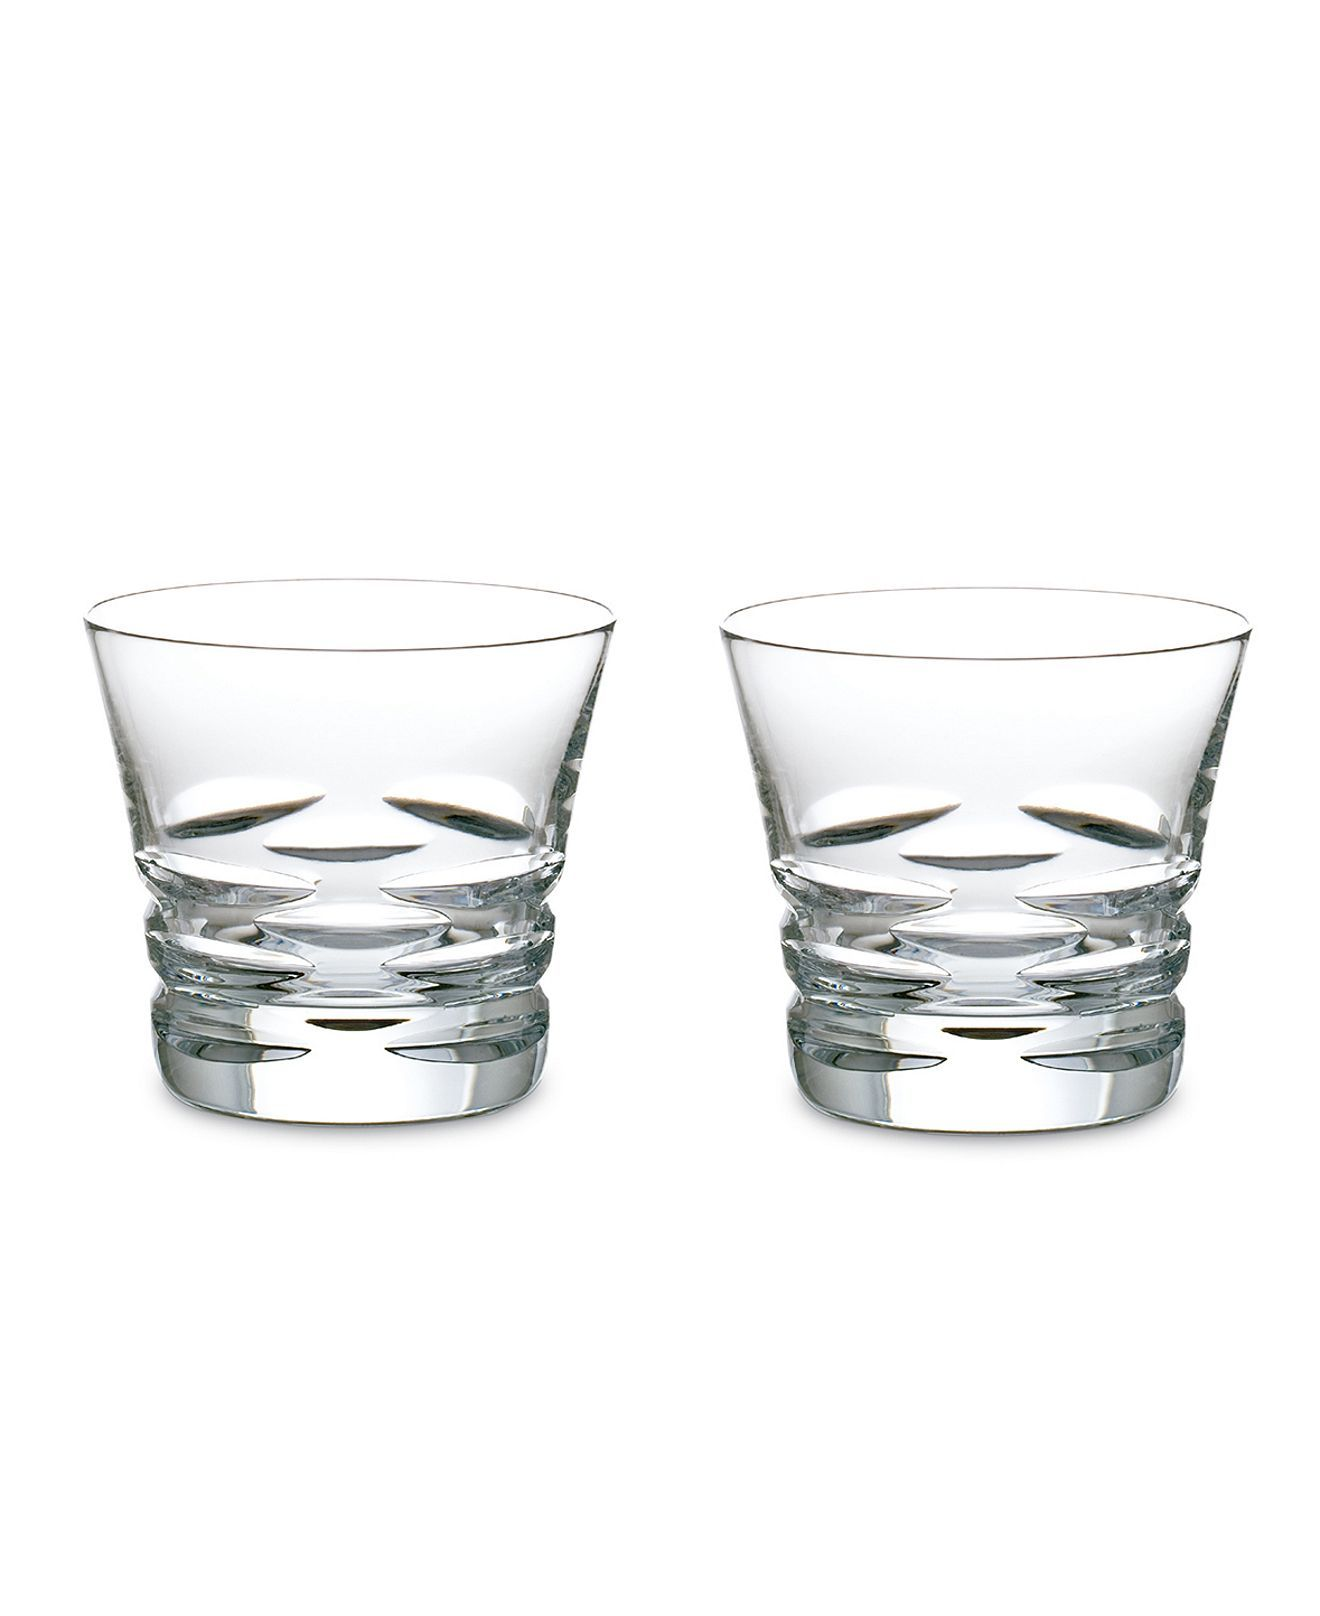 Baccarat Drinkware Set Of 2 Lola Double Old Fashioned Glasses Stemware Cocktail Dining Entertaining Macy S Glasses Fashion Baccarat Drinkware